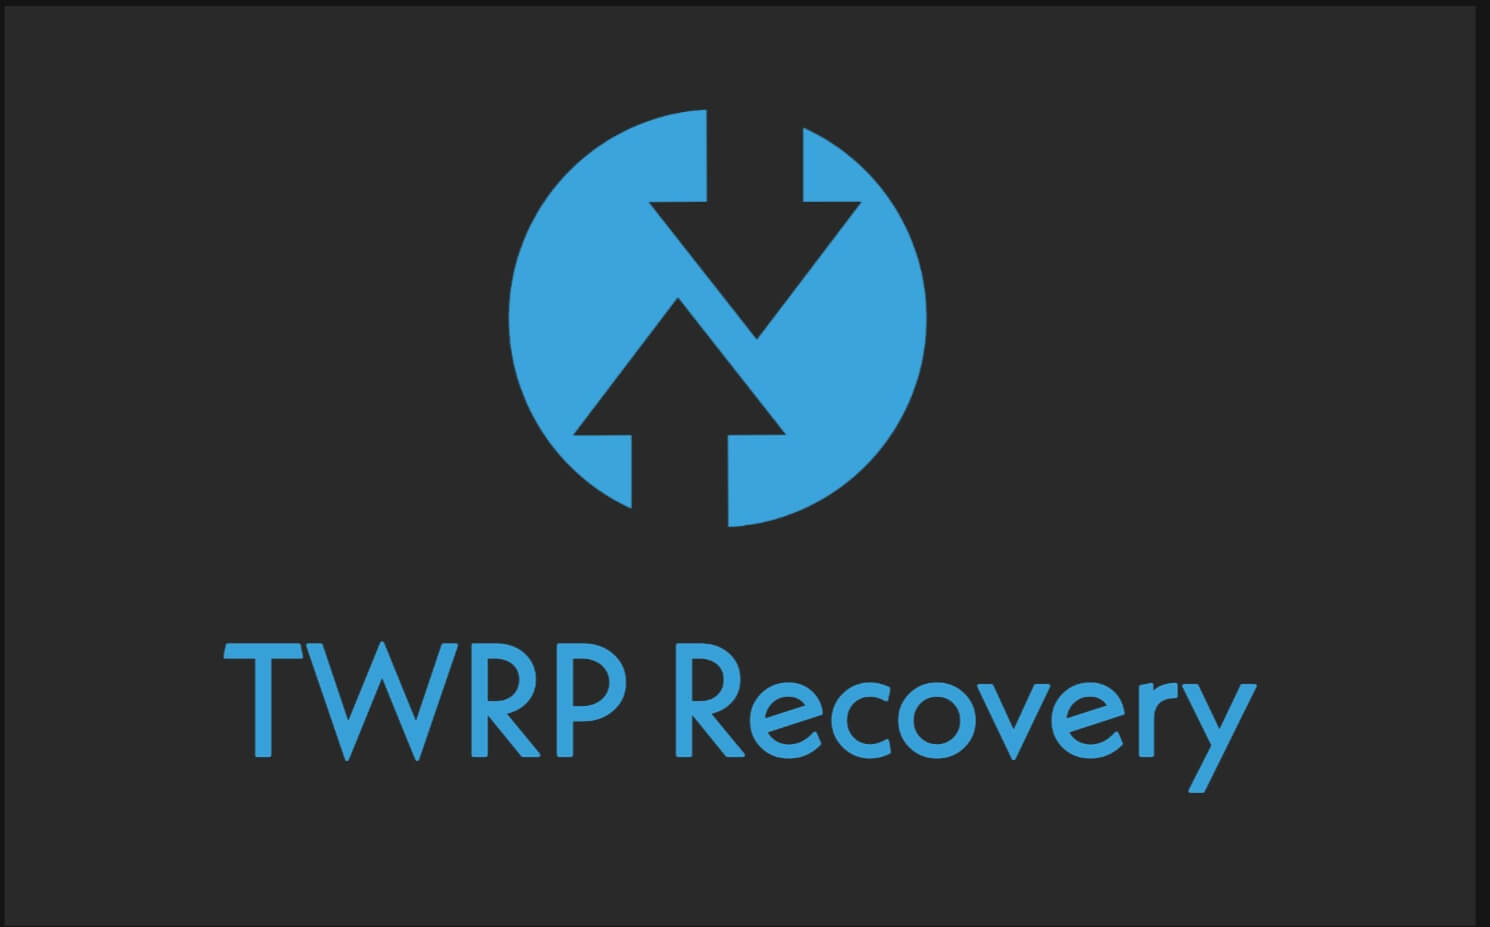 TWRP-Recovery.jpg